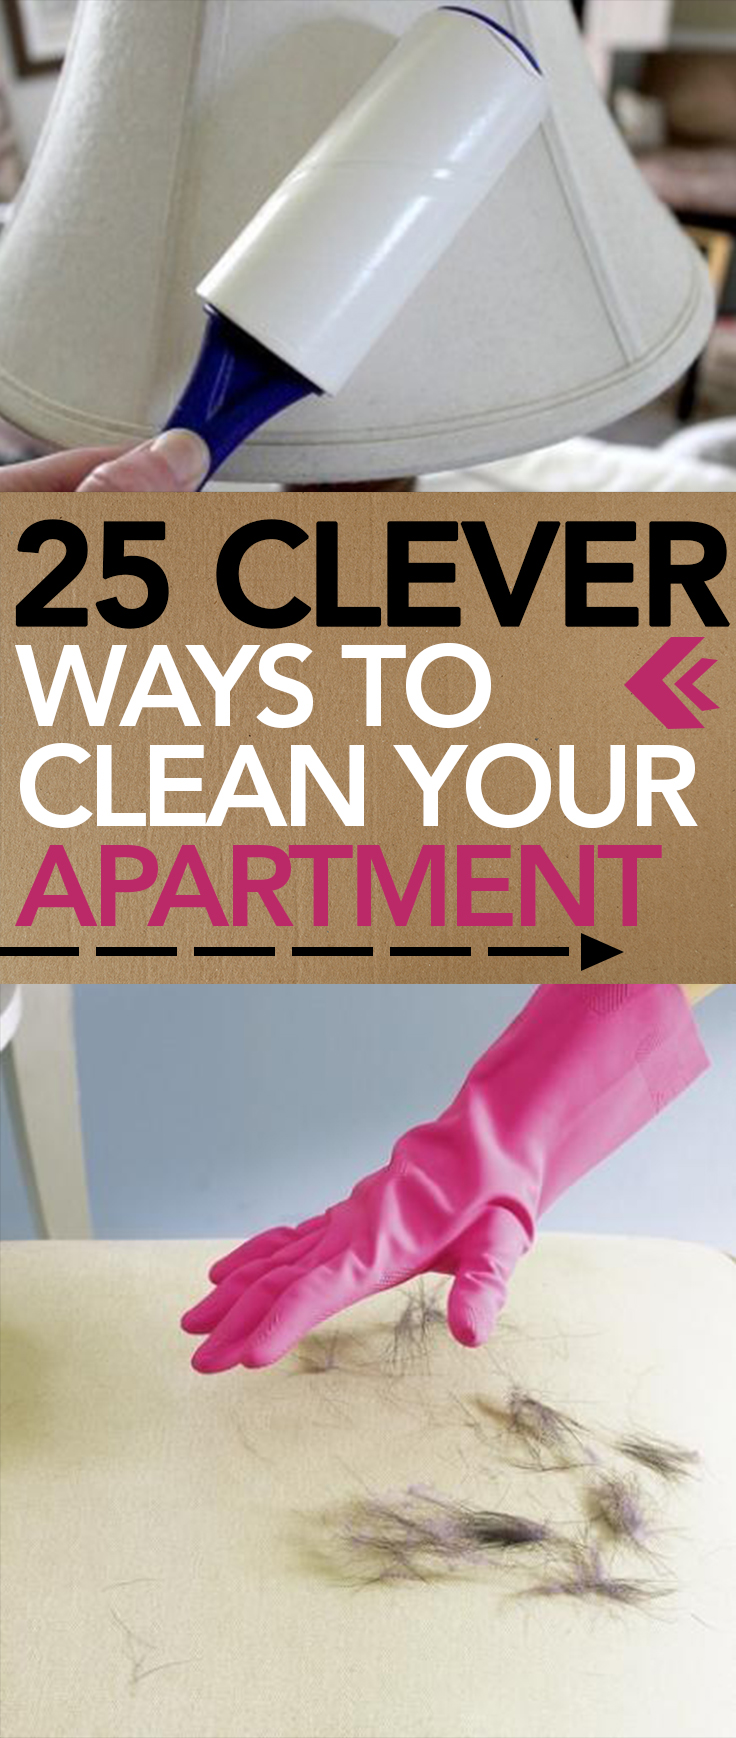 Apartment, apartment cleaning hacks, small space cleaning, popular pin, small space organization, organizing your apartment.